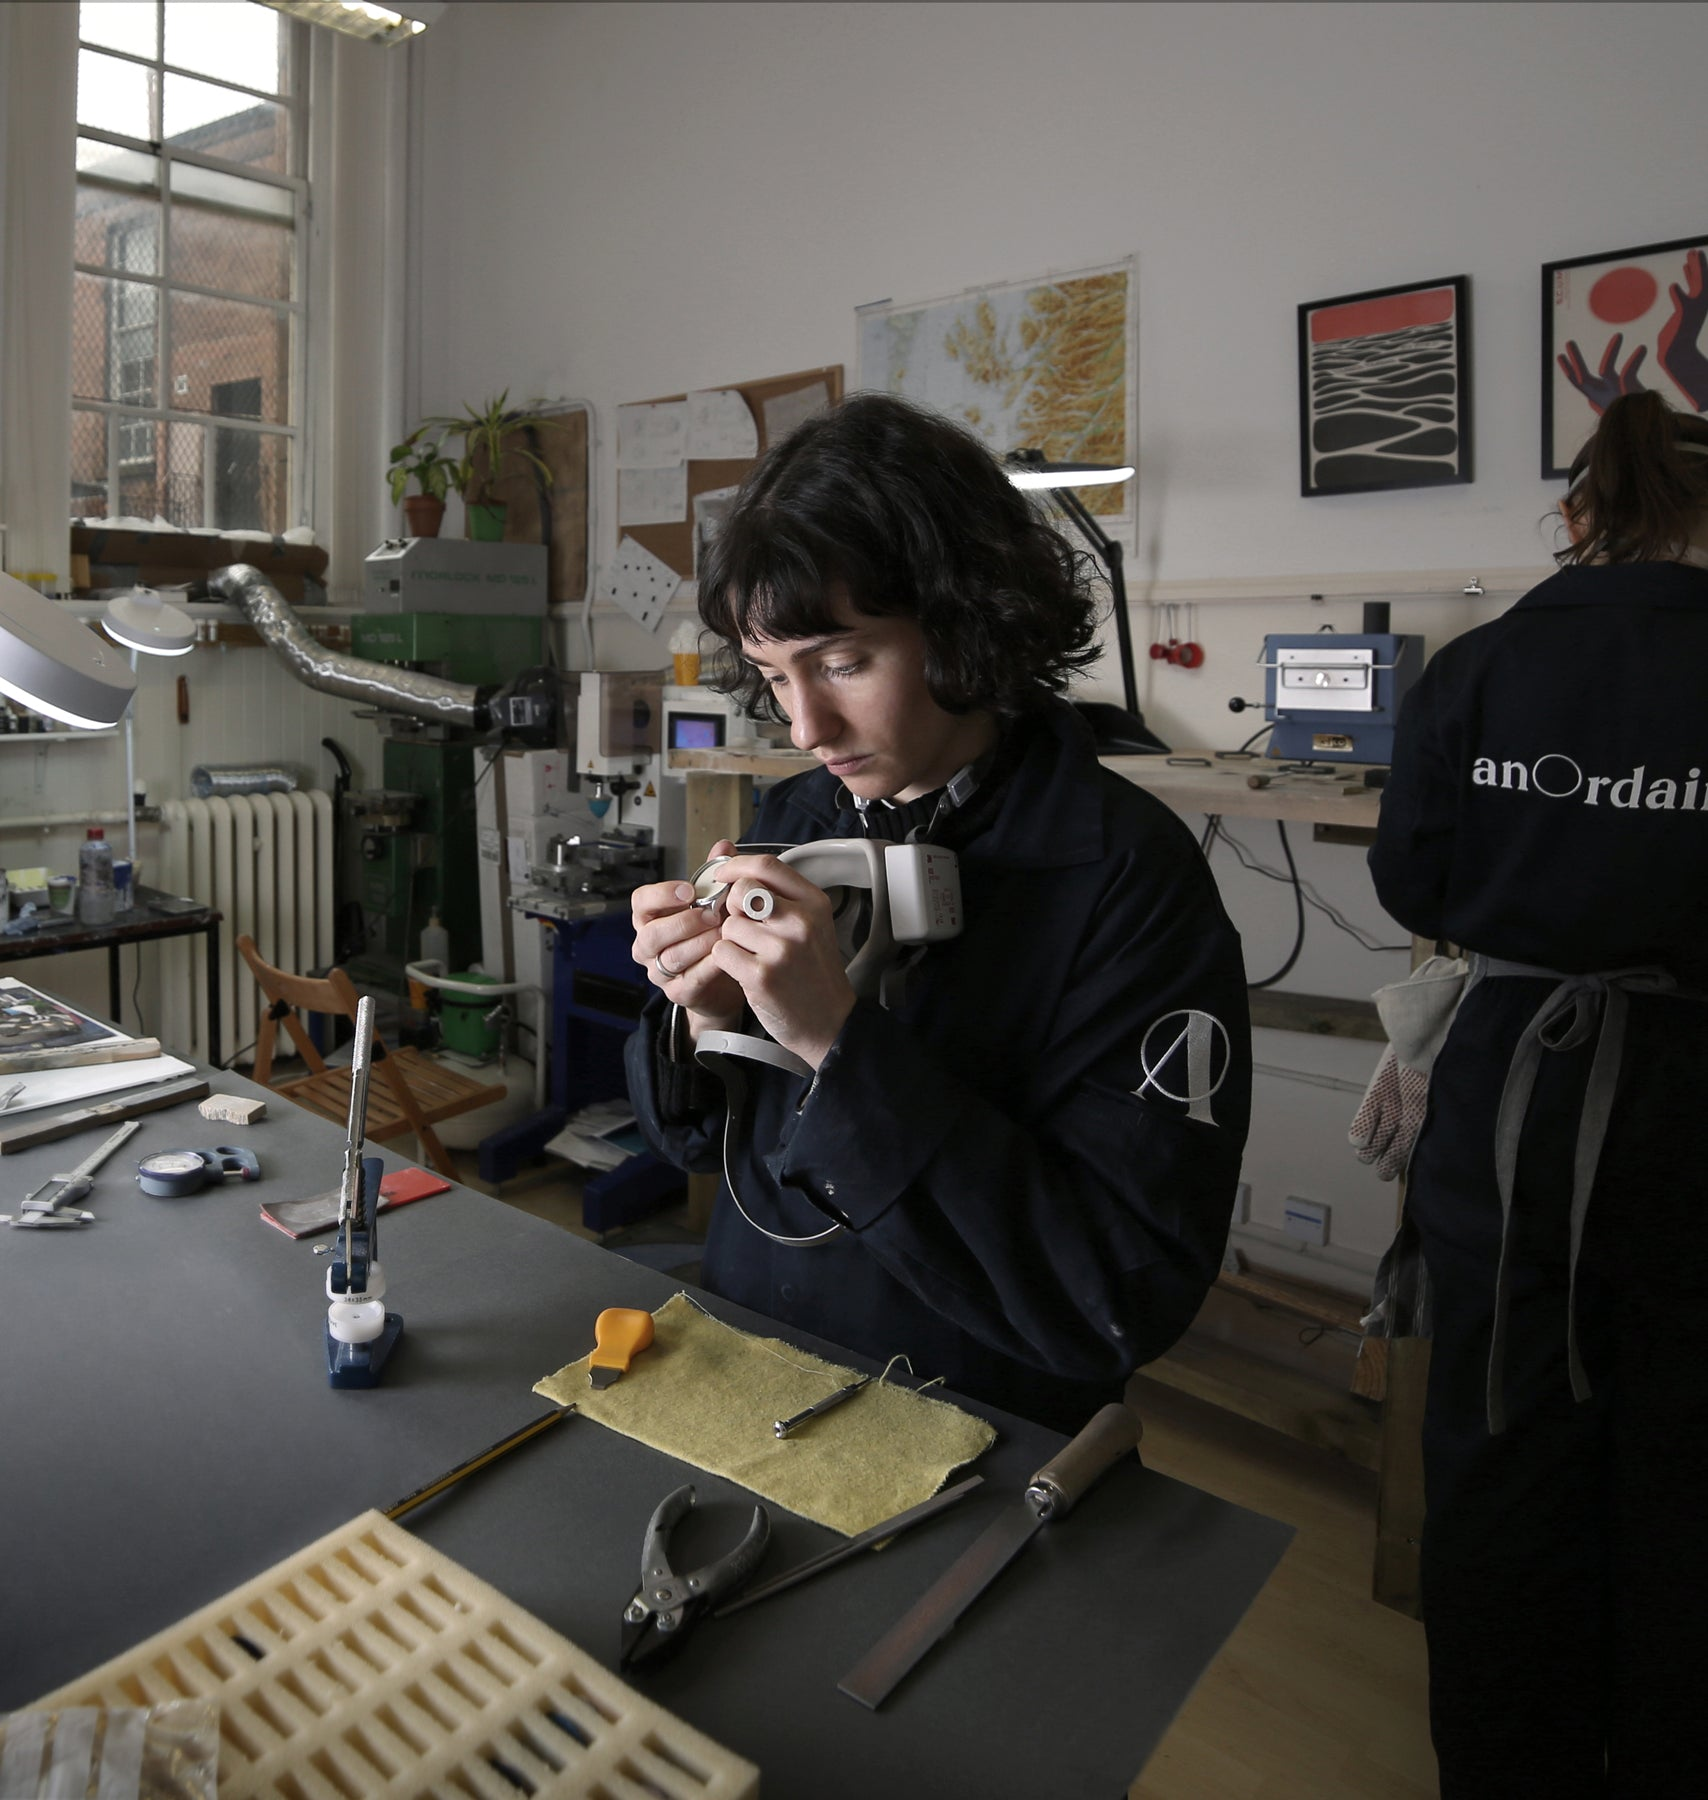 anOrdain's Glasgow workshop in which watch-making, enameling and pad-printing occur